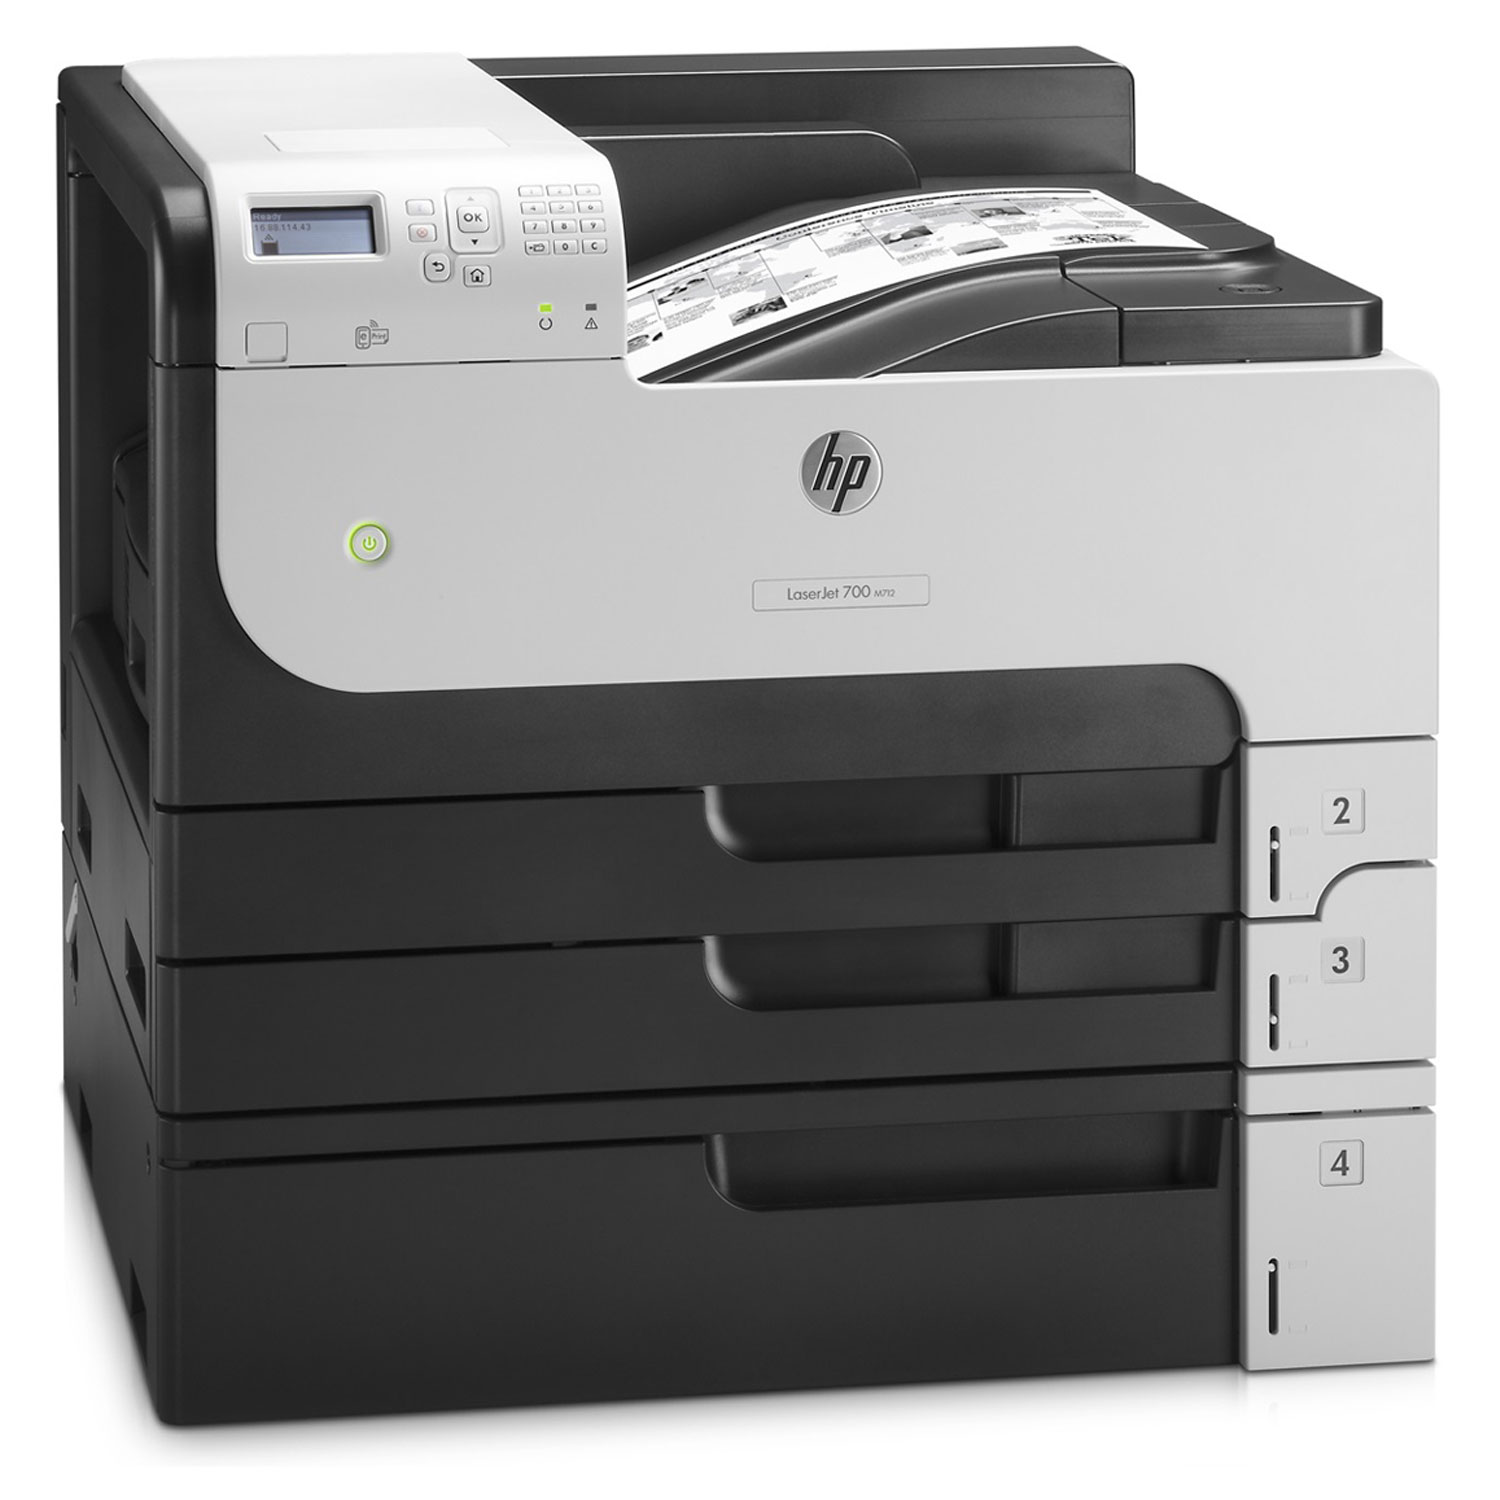 hp laserjet enterprise 700 m712xh imprimante laser hp. Black Bedroom Furniture Sets. Home Design Ideas